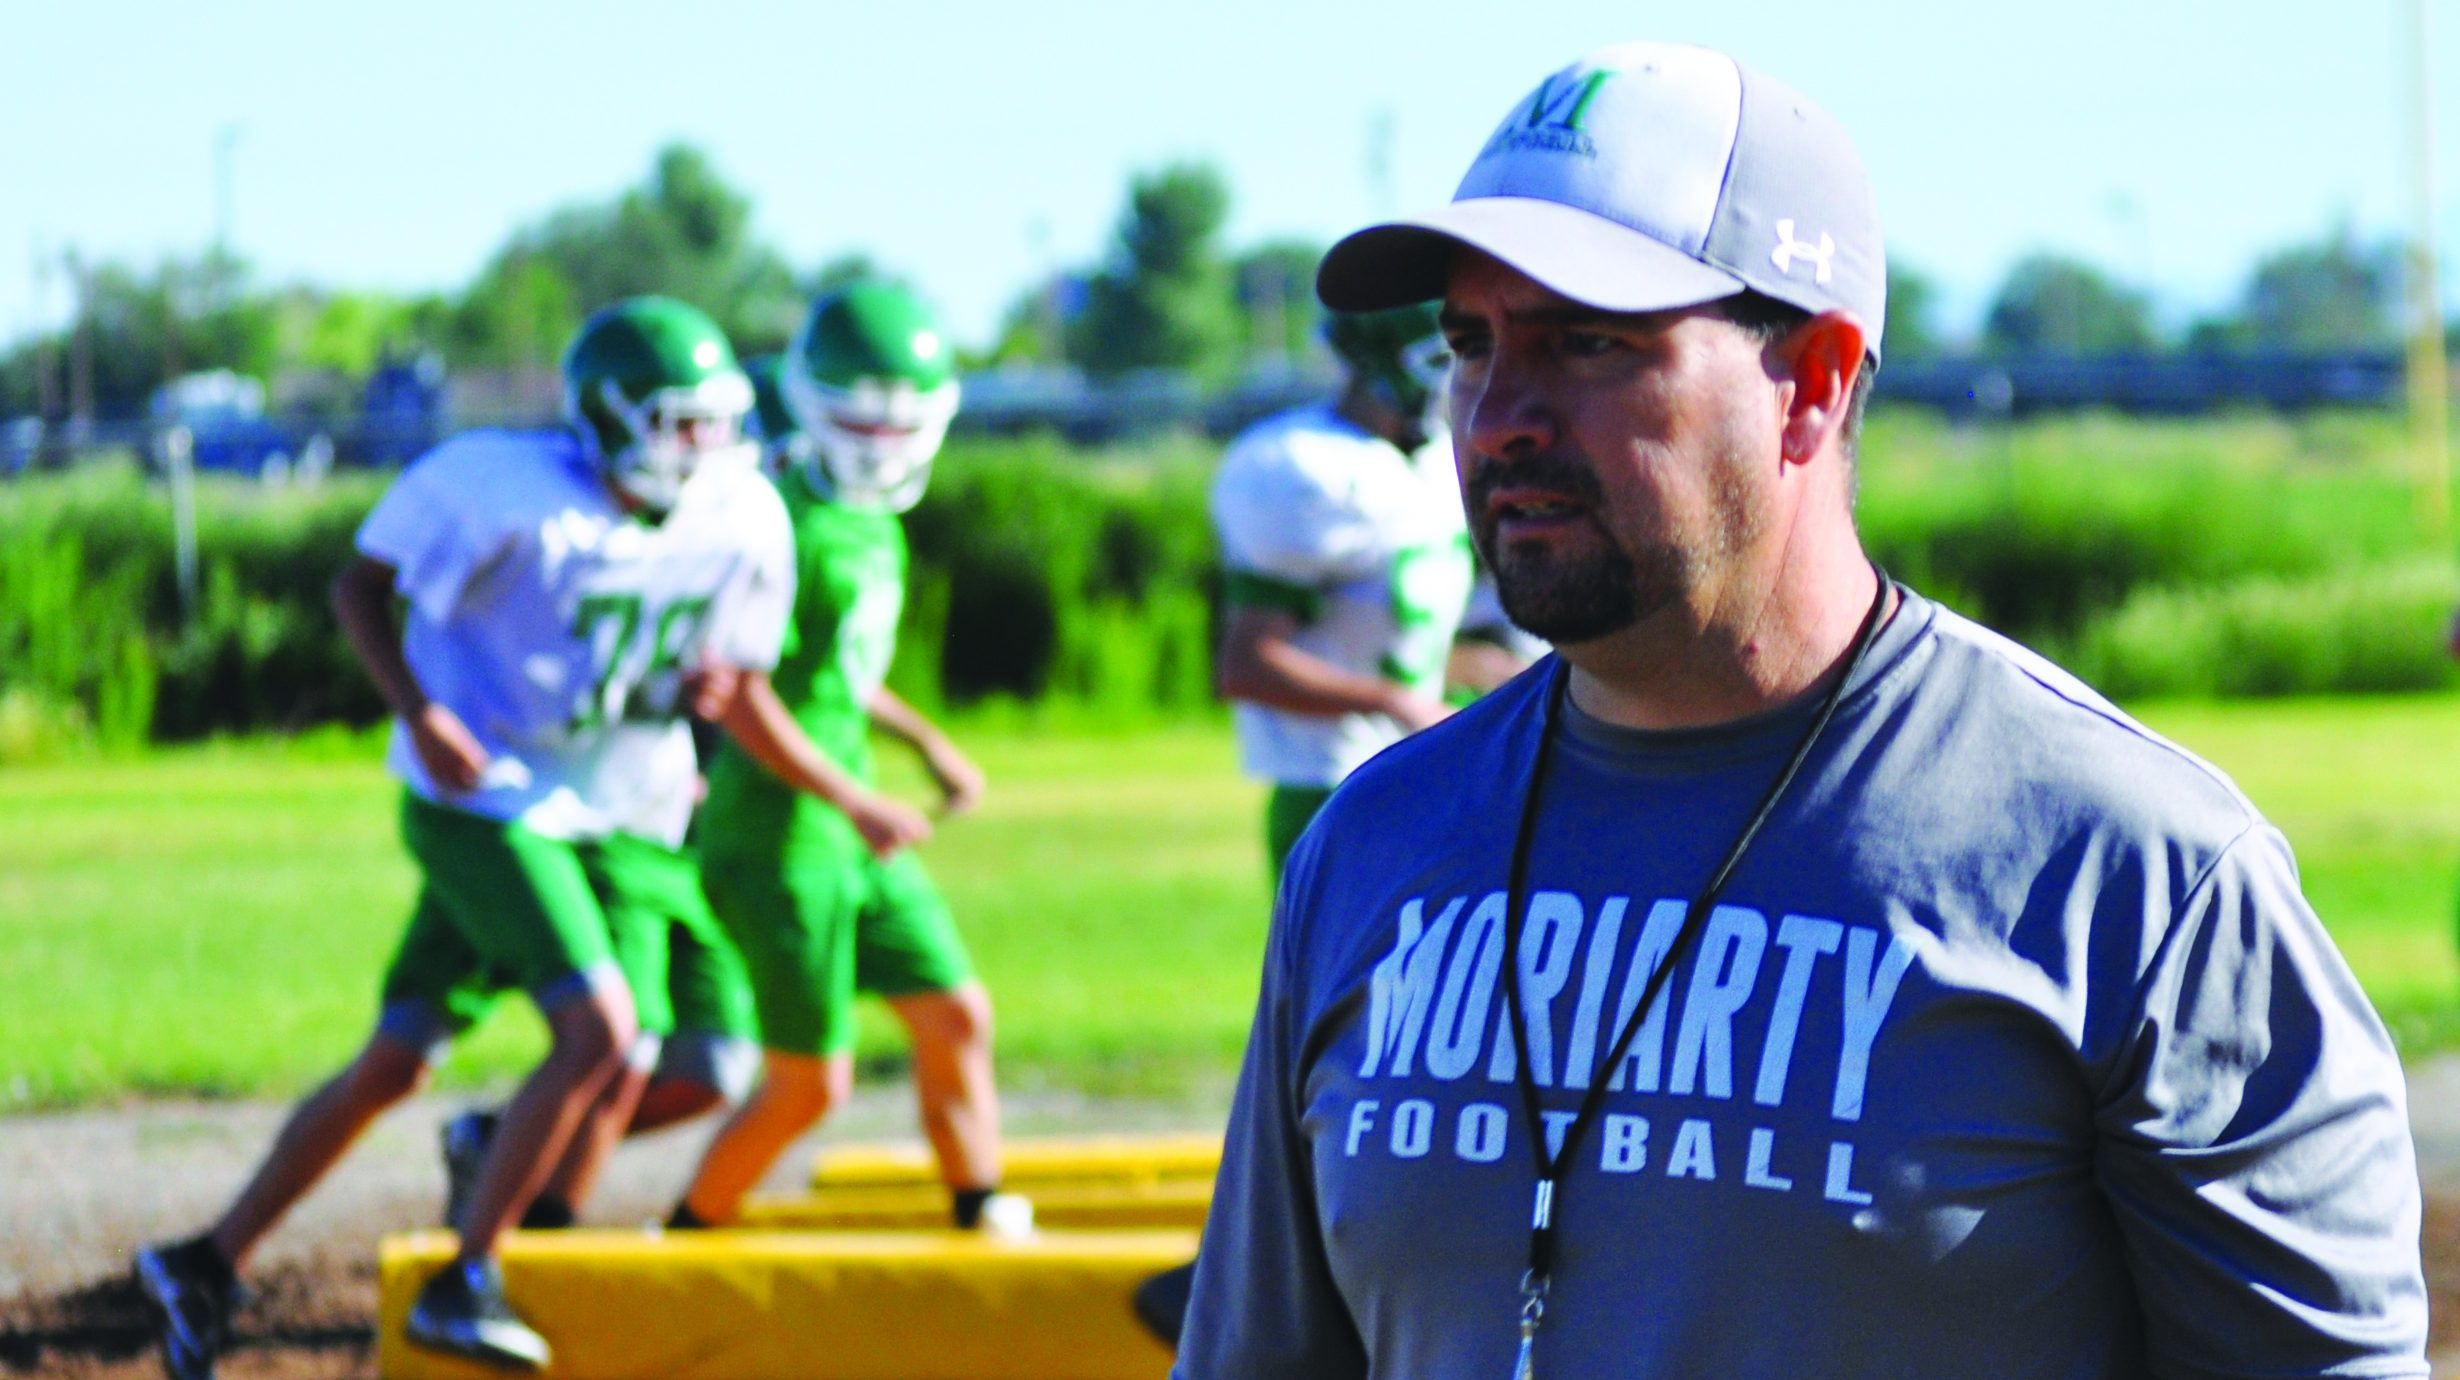 New Moriarty High football coach's main goal: 'to produce good young men of character'